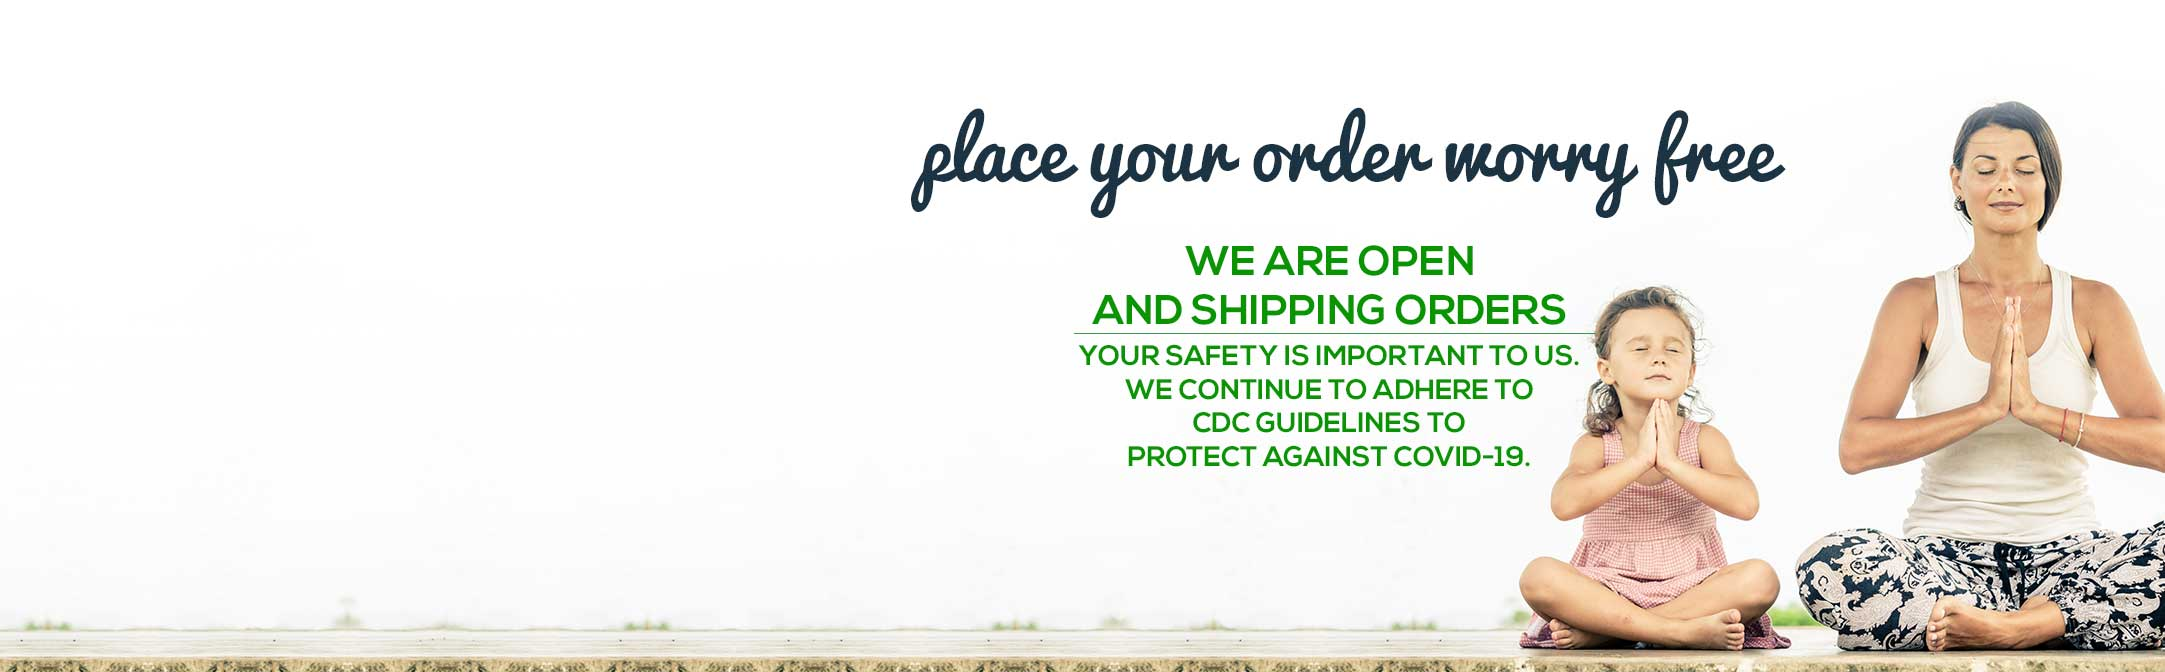 We are open and shipping orders.